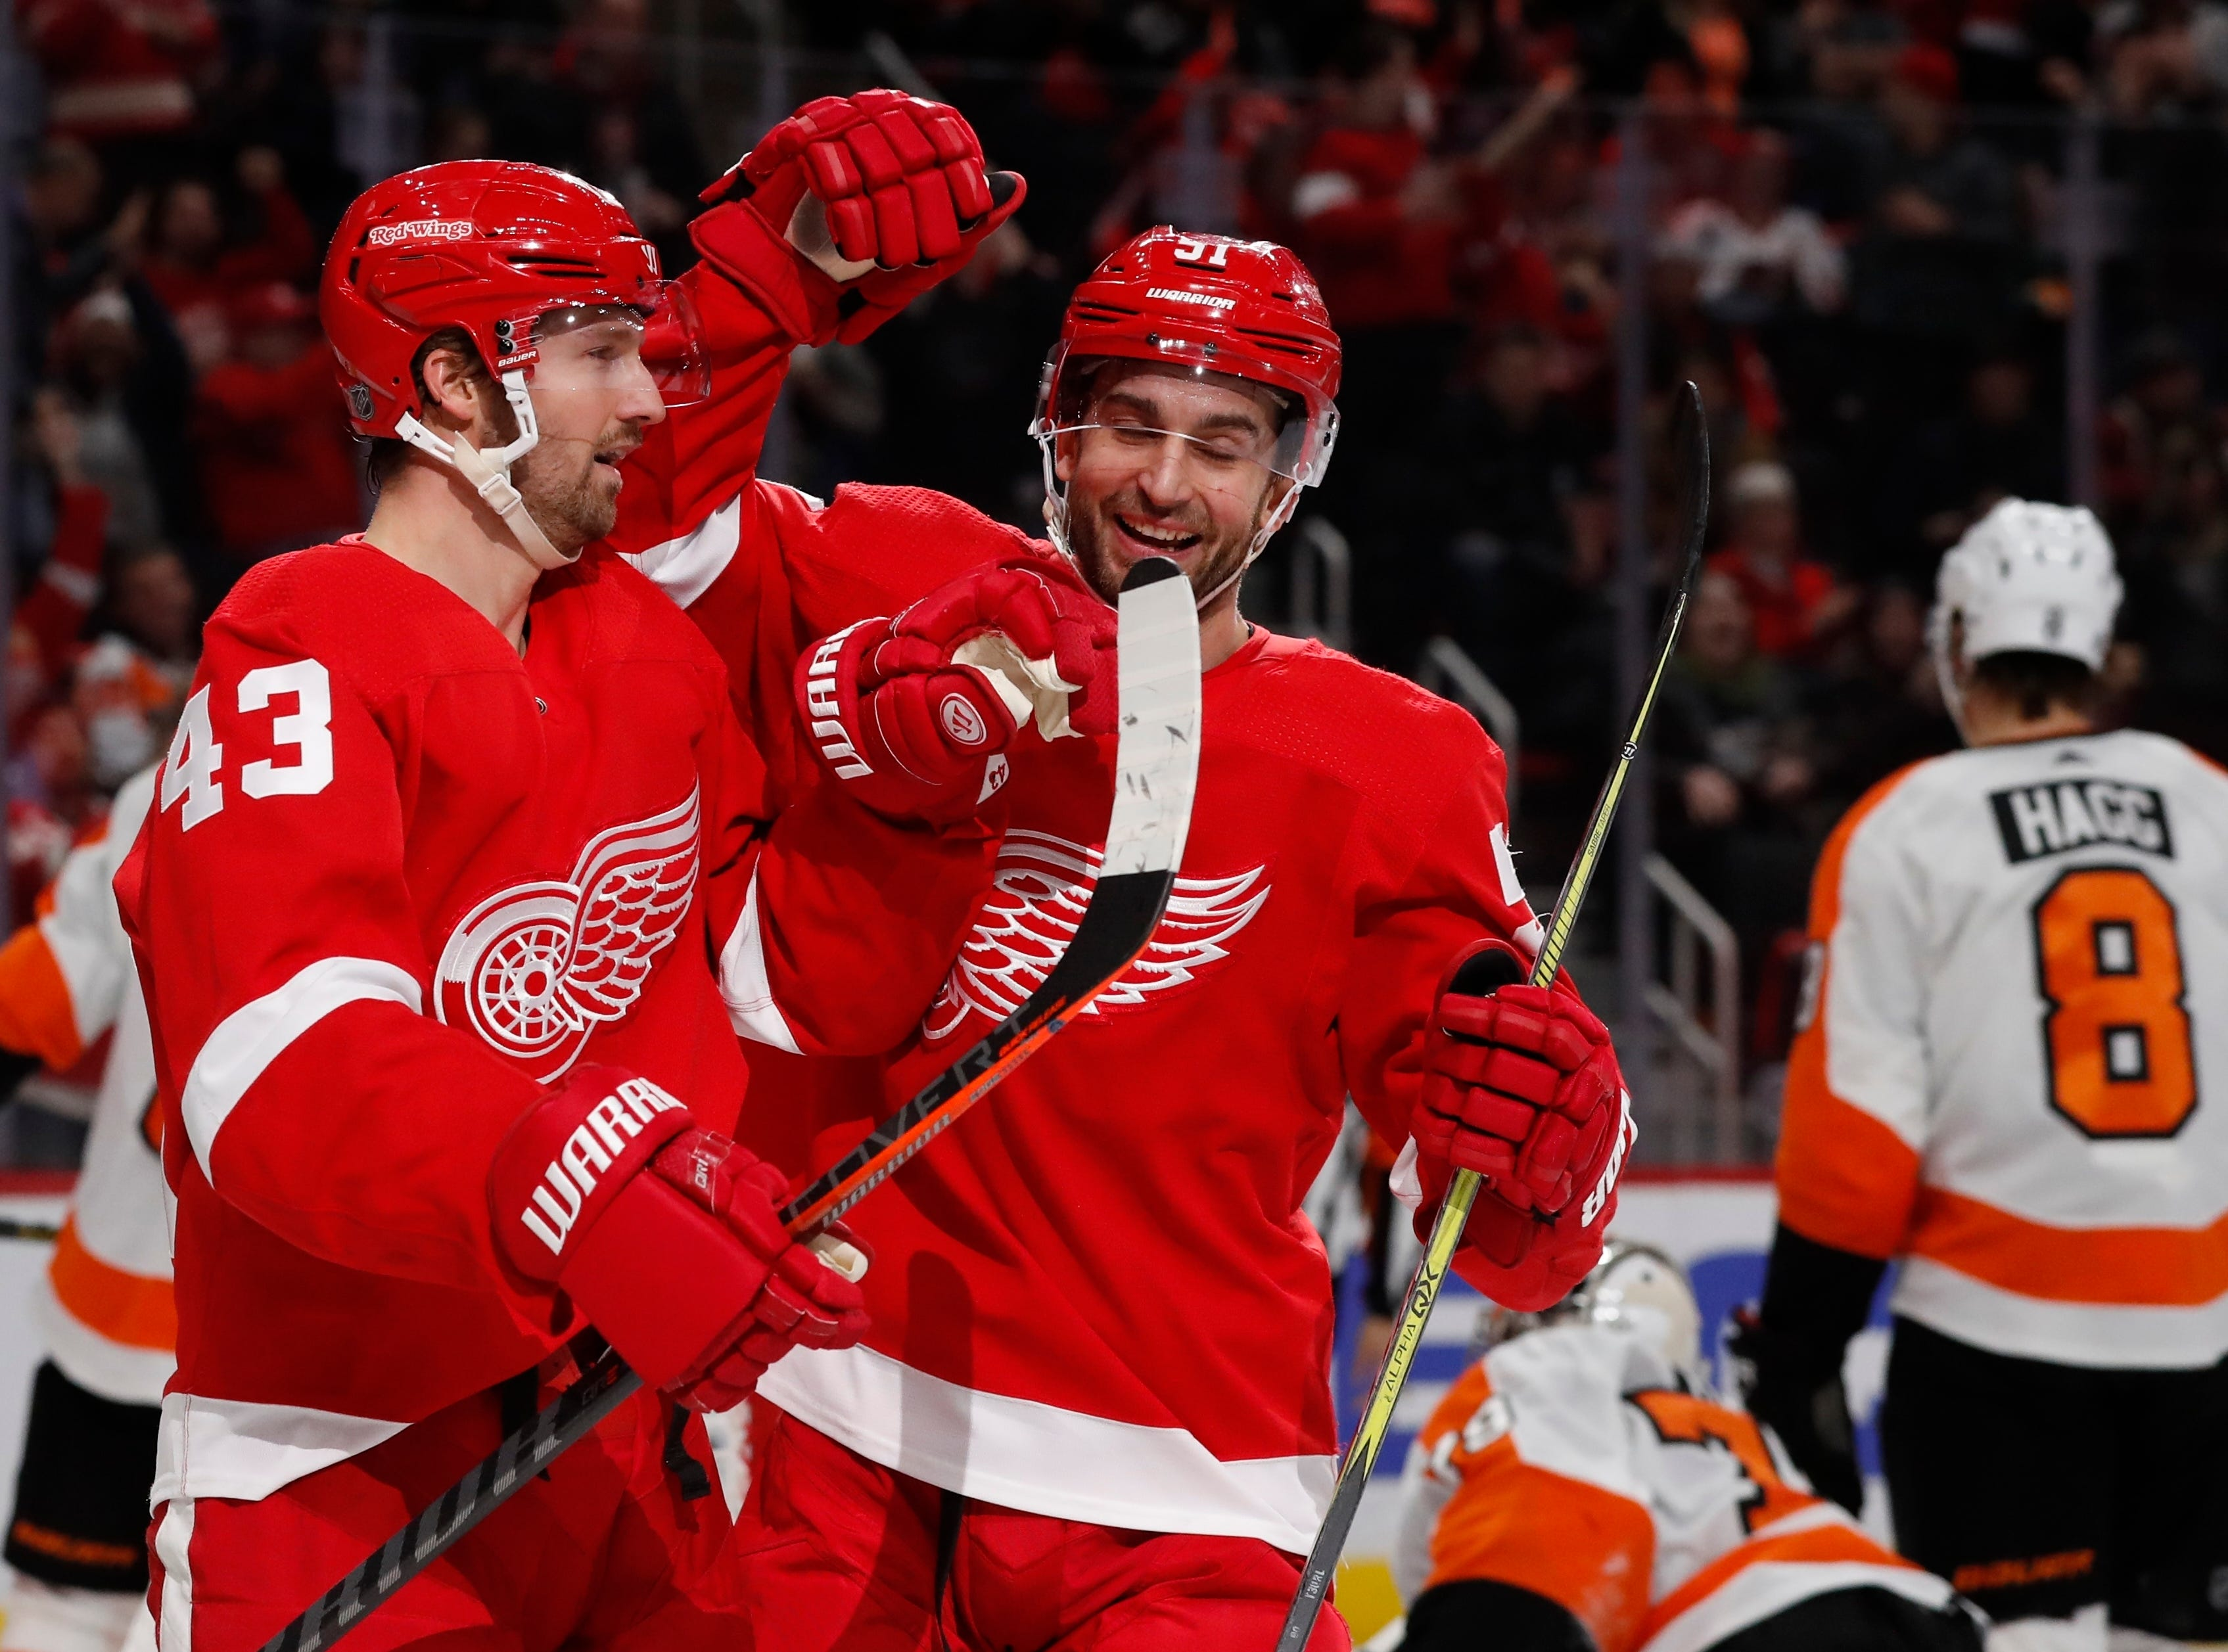 Detroit Red Wings left wing Darren Helm (43) is congratulated on his goal by teammate center Frans Nielsen (51) during the second period.